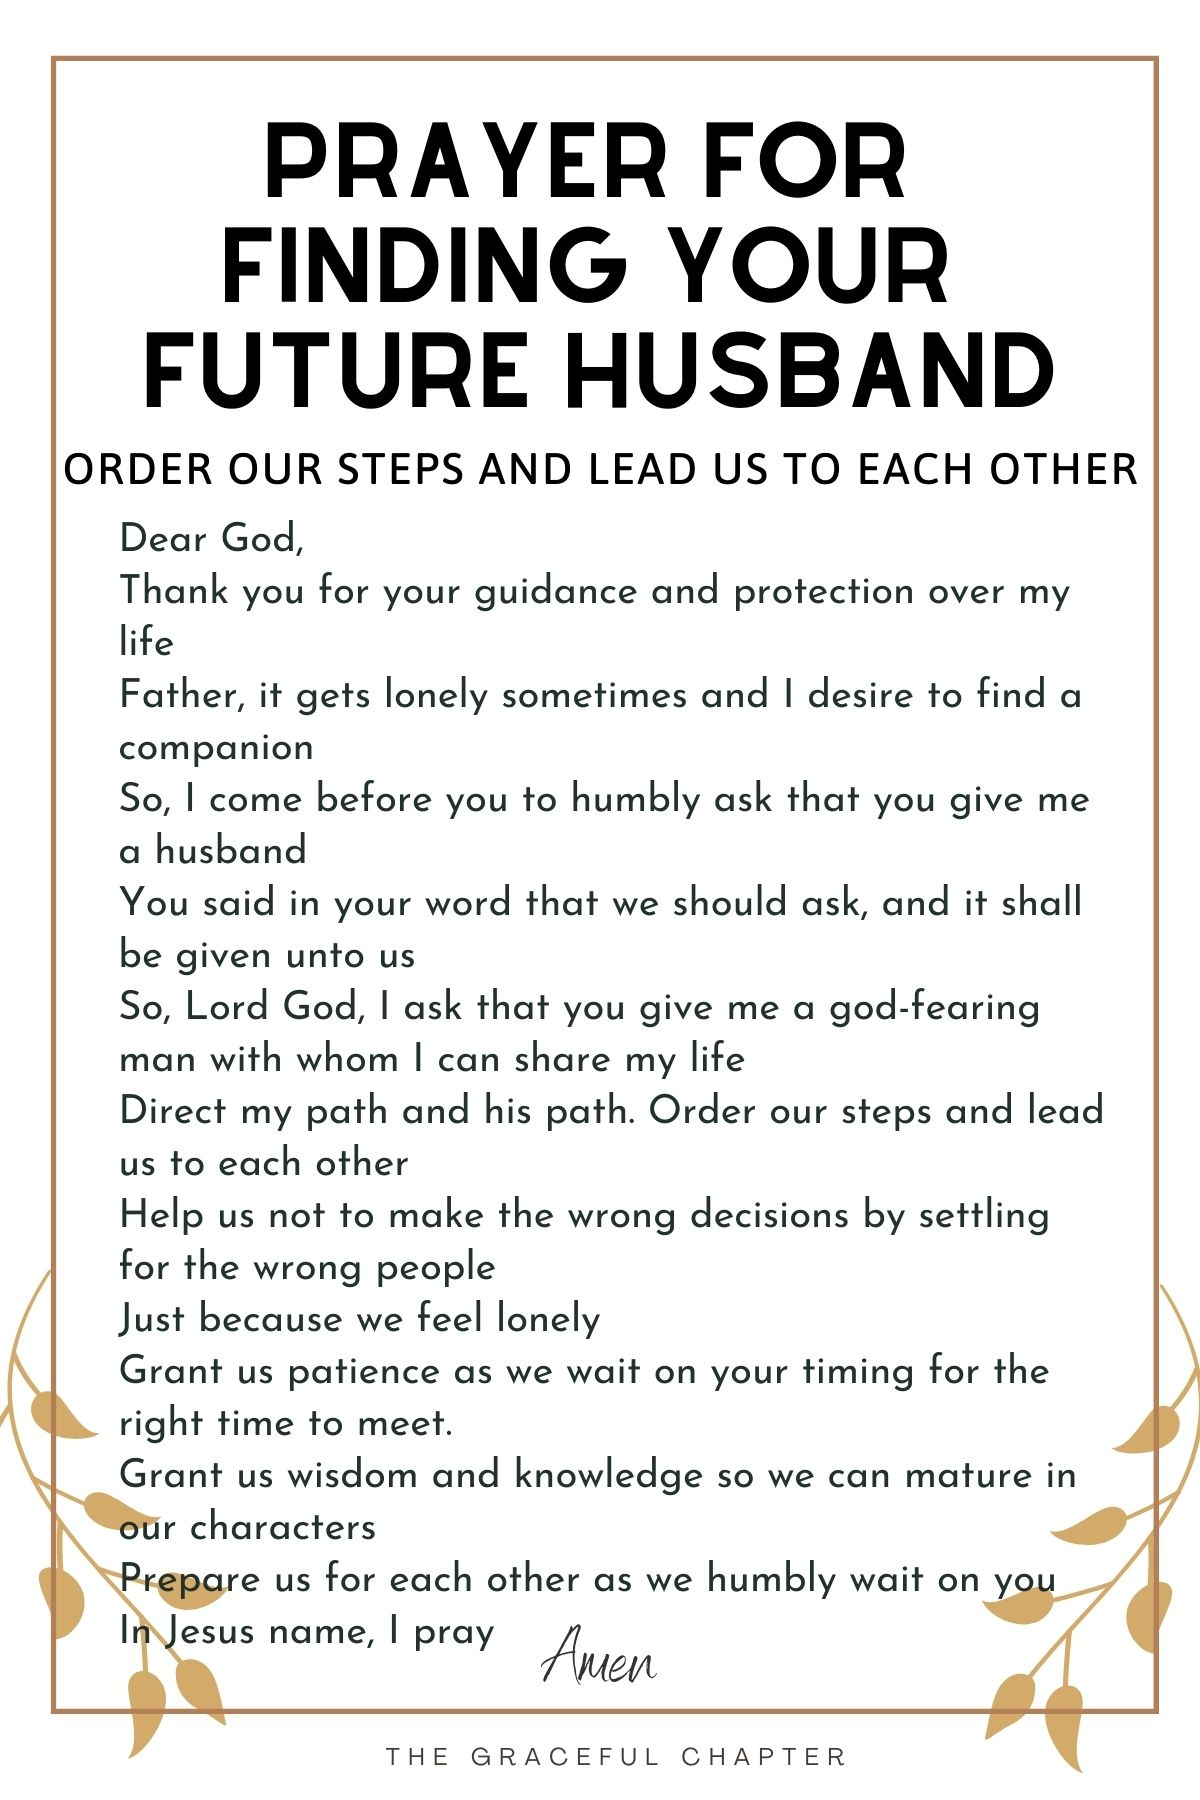 Prayer for finding your future husband - Order our steps and lead us to each other